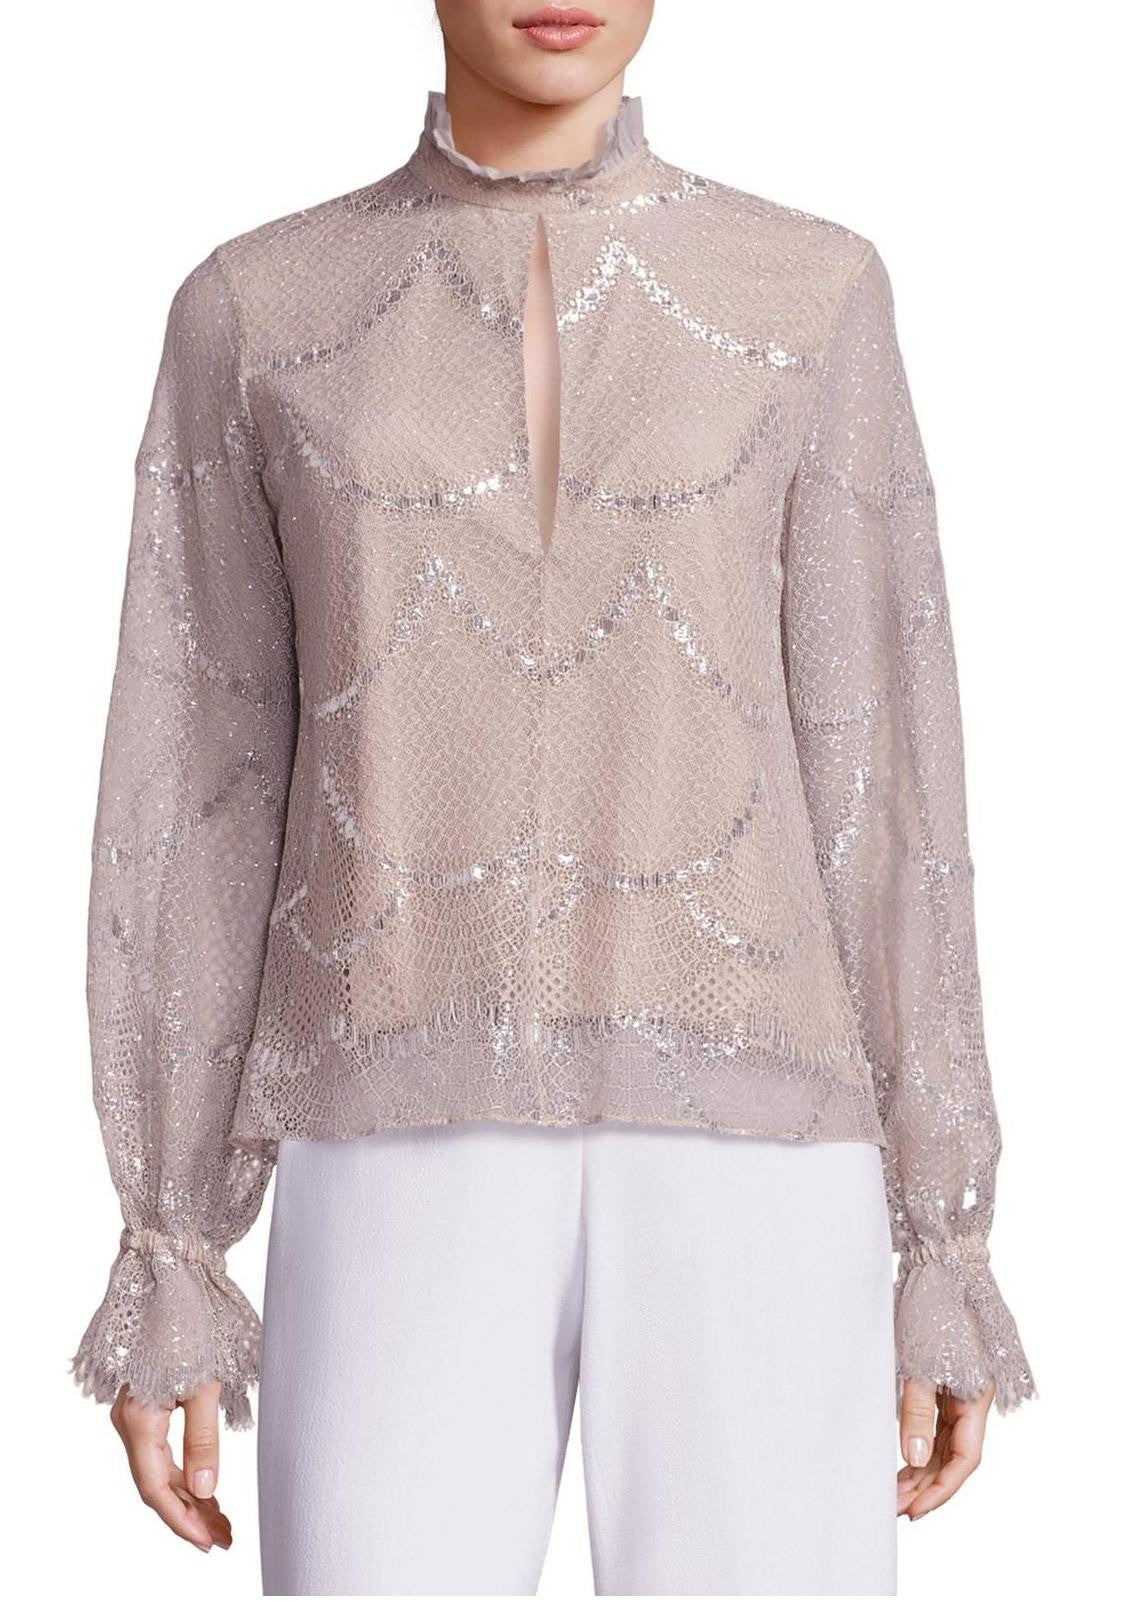 Alexis lucy top silver blush